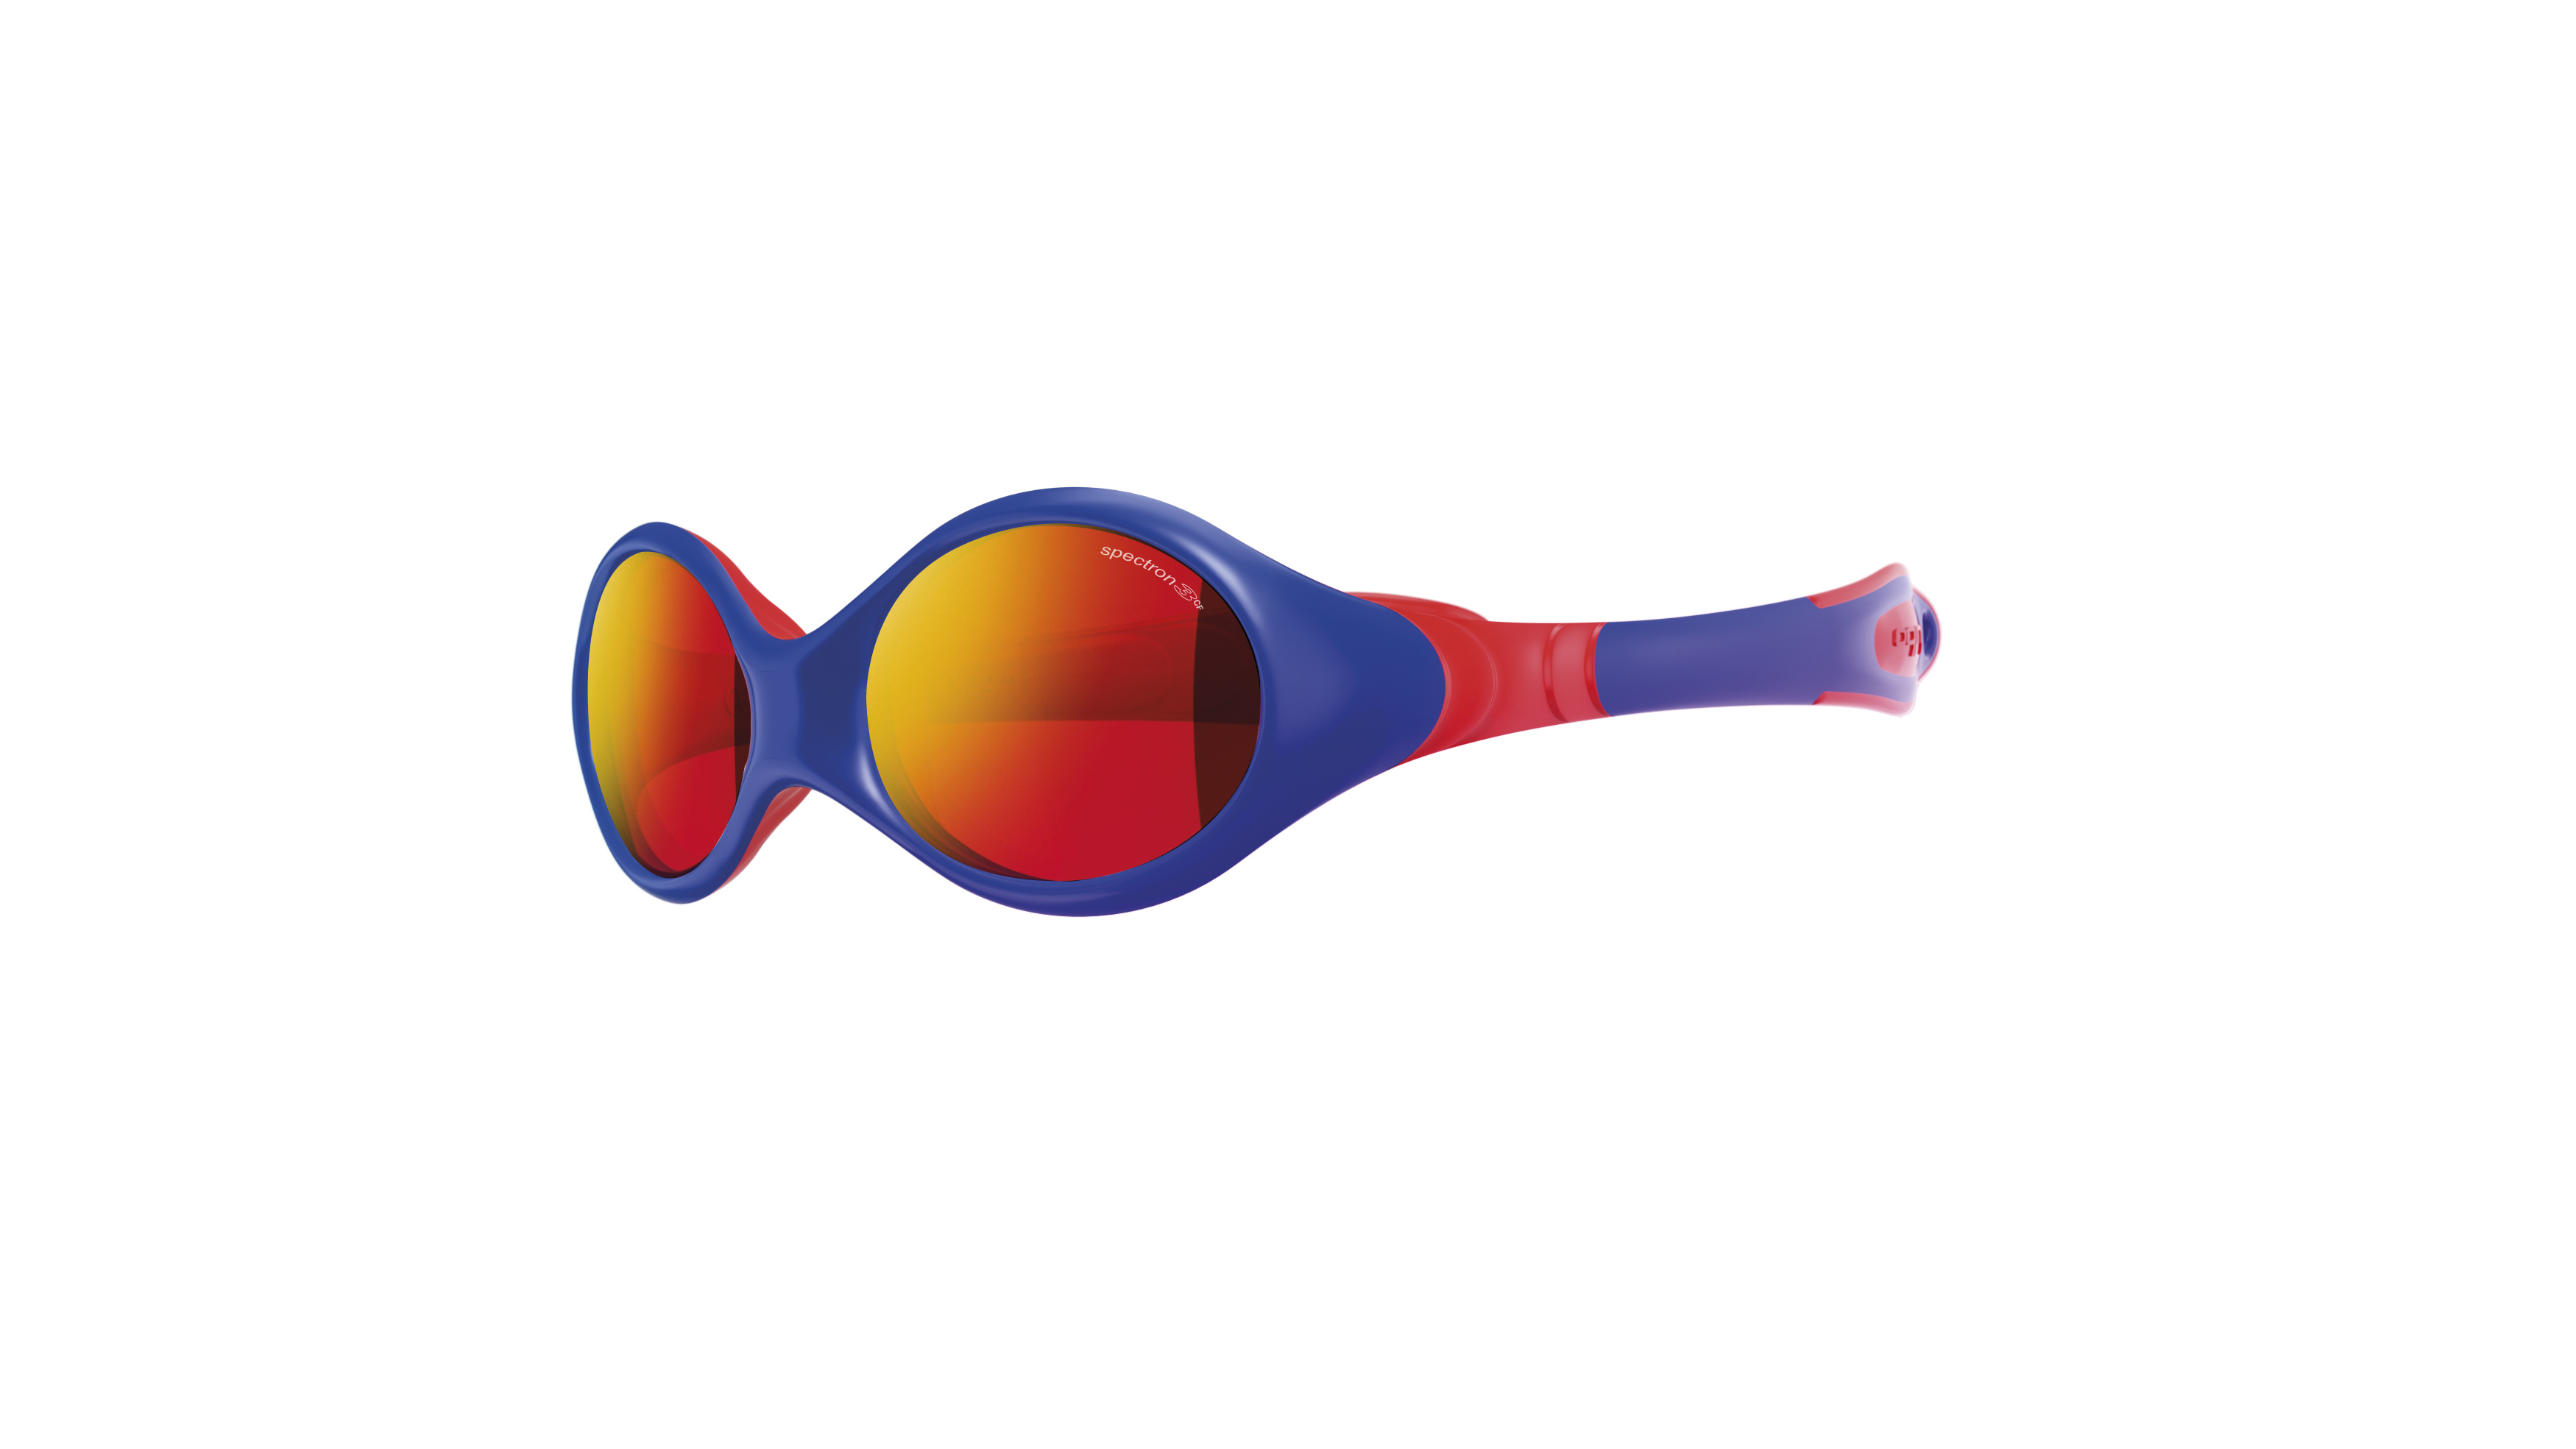 e9a1b2e197 Julbo Looping 3 J3491132C Toddler Sunglasses with Spectron 3CF Blue Red  J3491132C - Optiwow